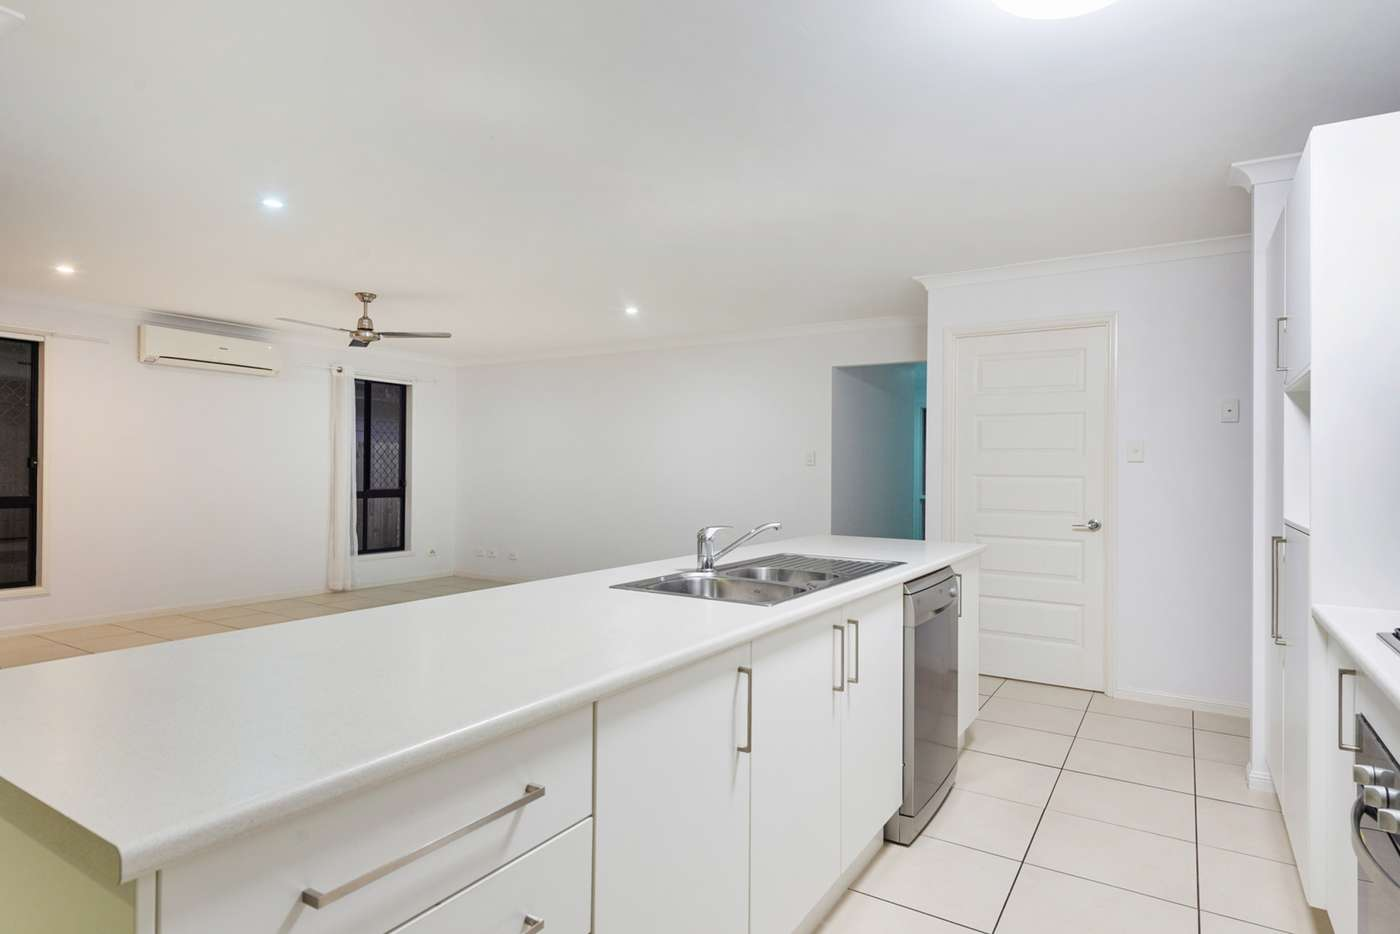 Fifth view of Homely house listing, 70 Landsdowne Drive, Ormeau Hills QLD 4208